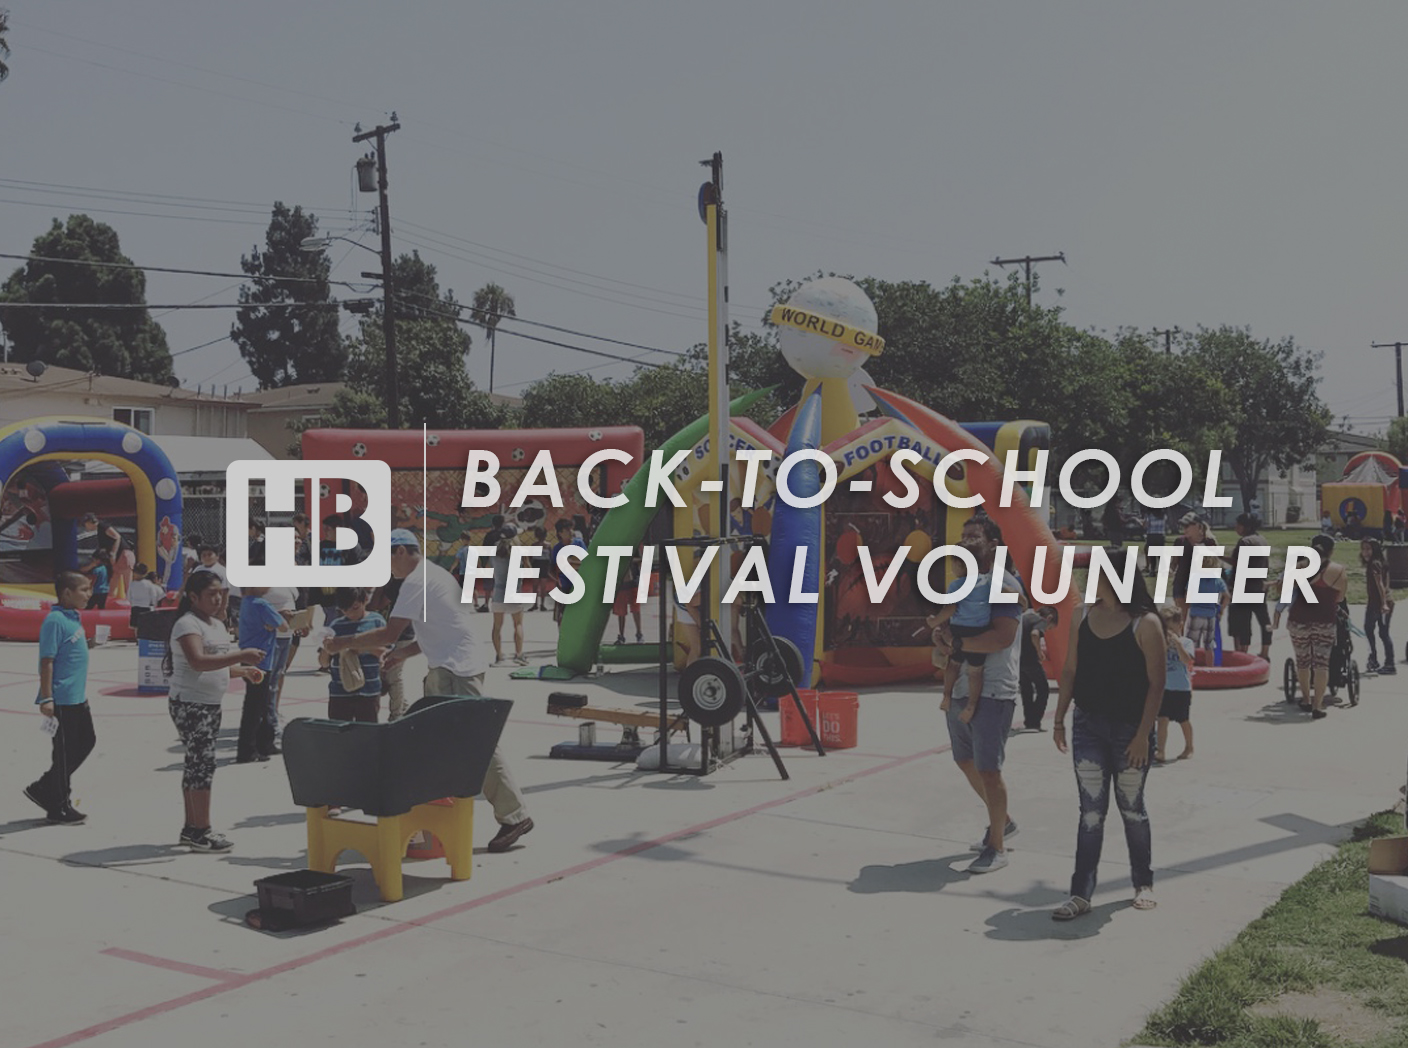 Hb back to school